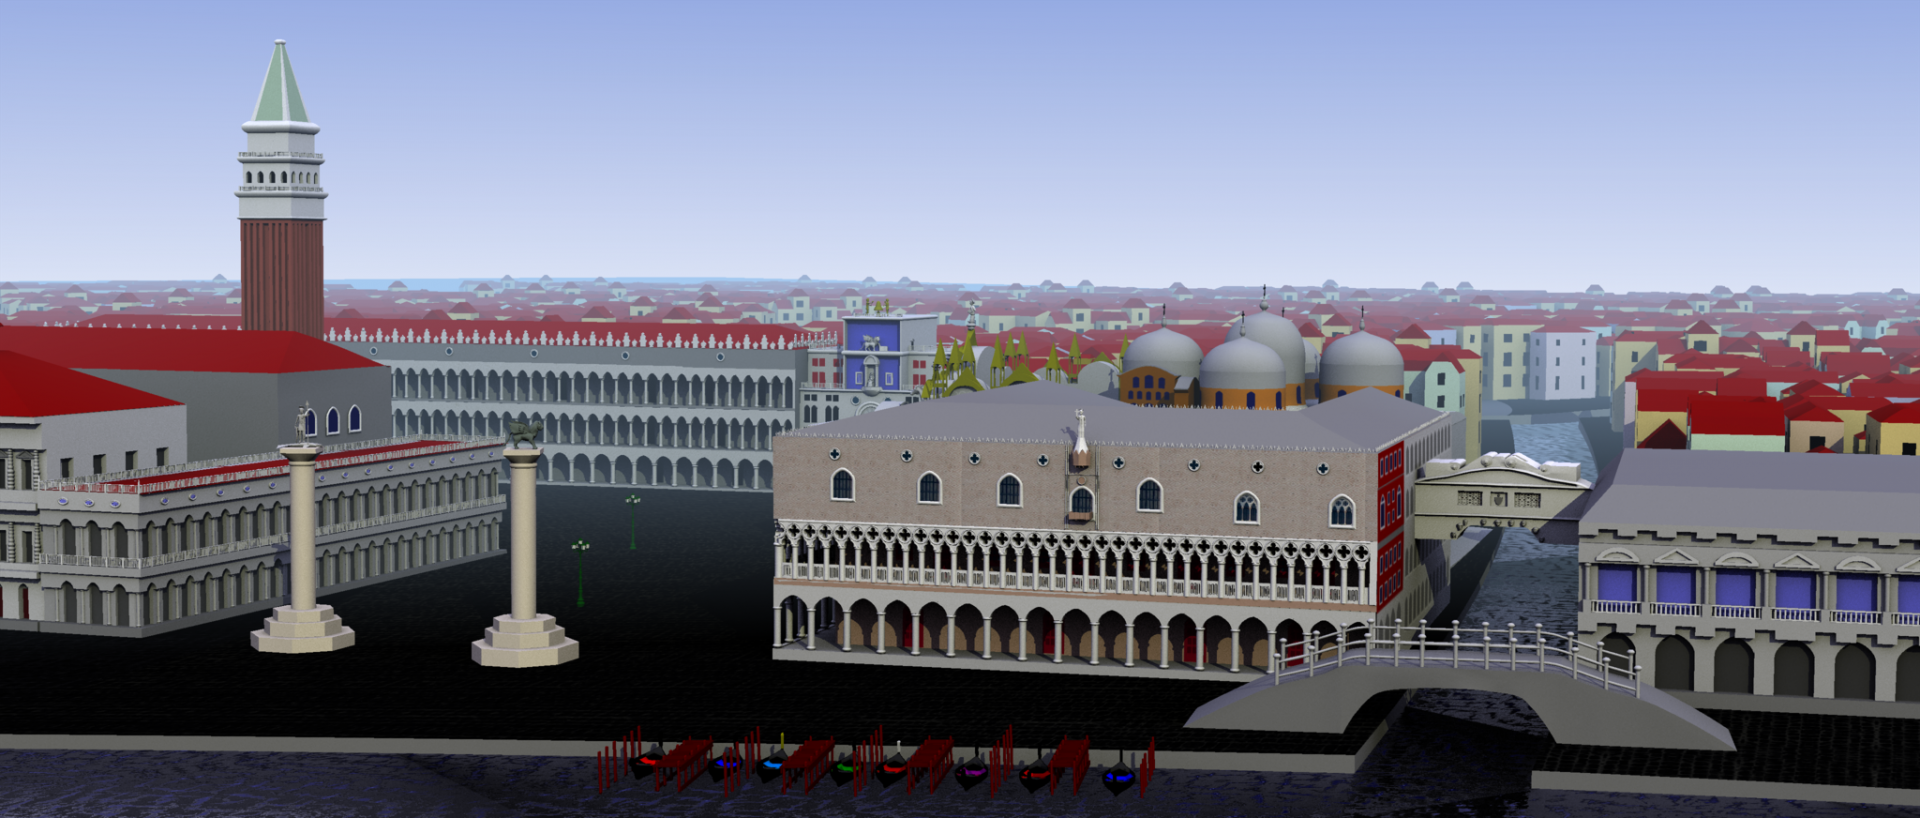 Venice in progress AOl  fog water experiment2 cobblestonenormal0.png